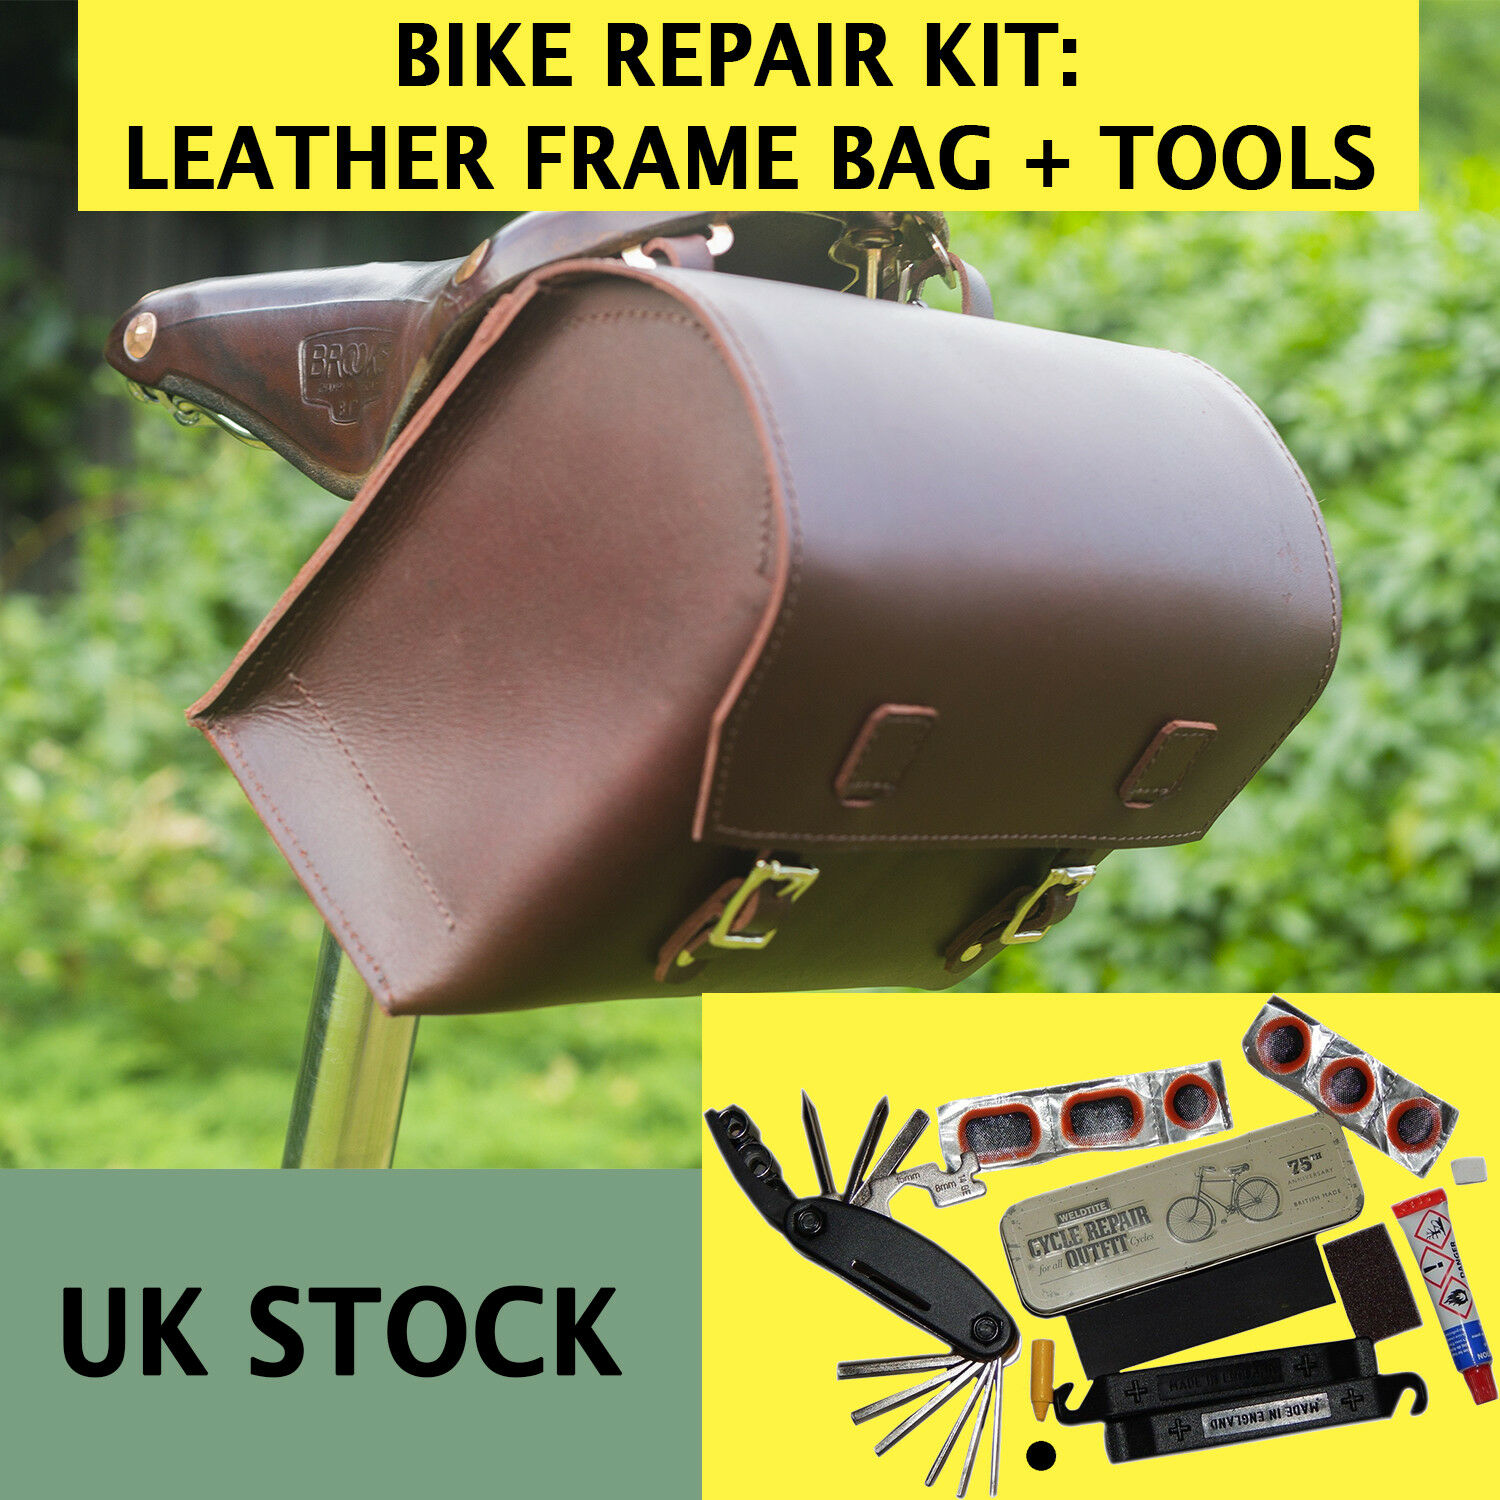 Bike Repair Set  Large Leather Bag (CHERRY)  Puncture Kit, 16in-1 Tool MADE IN UK  the latest models